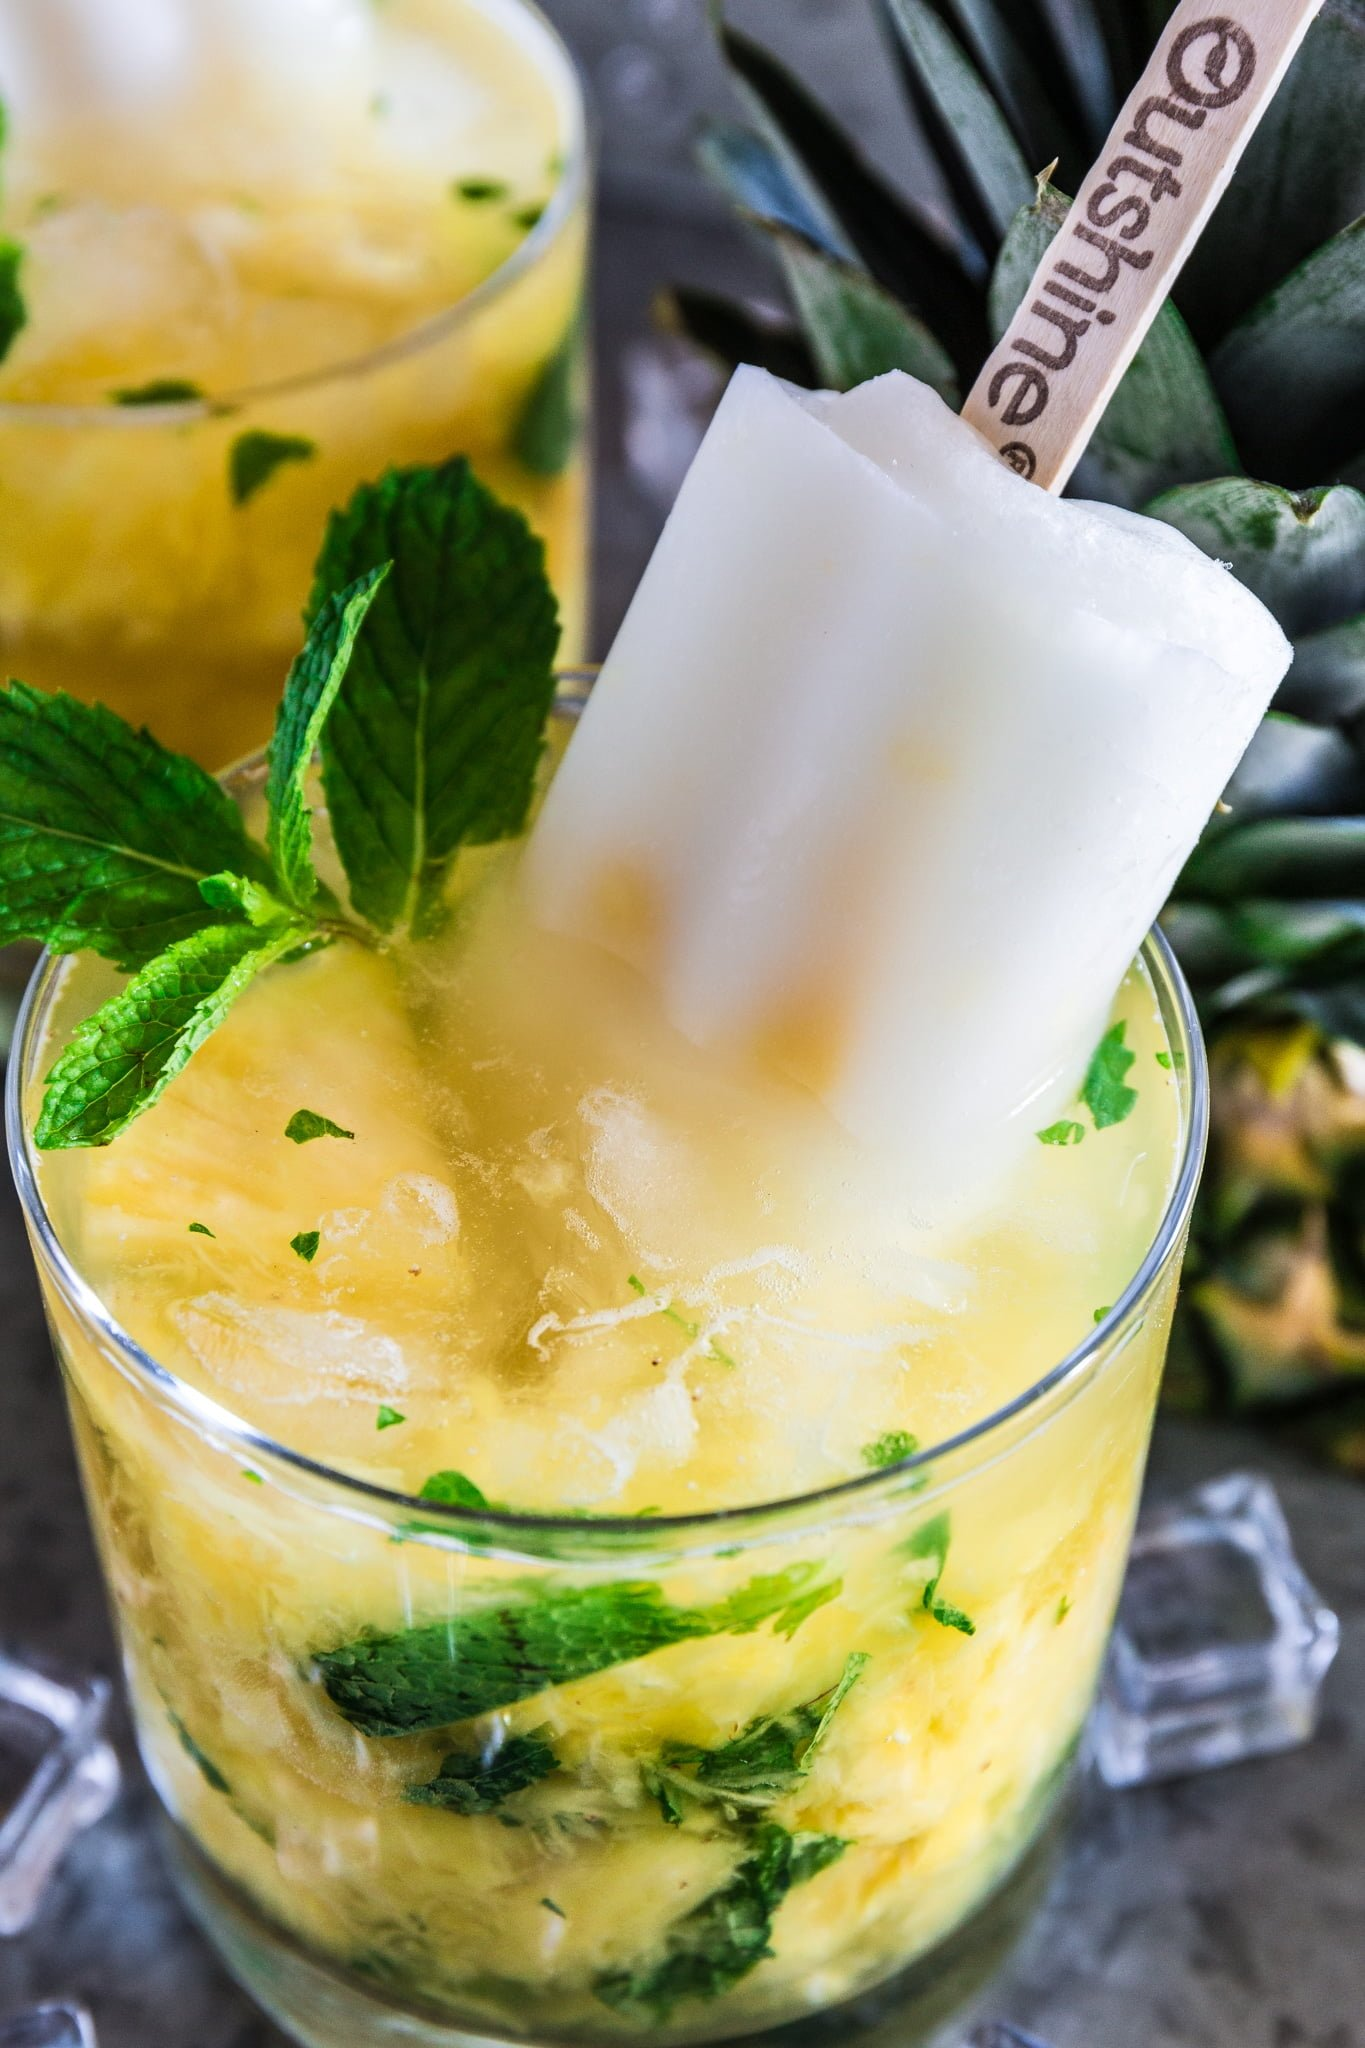 Pineapple Mint Fruit Bar Caipirinha   www.oliviascuisine.com   Summer is almost here and this Pineapple Mint Fruit Bar Caipirinha will be the hit of your parties! Sweet, refreshing and very easy to make. Who doesn't love that? (Recipe by @oliviascuisine.)